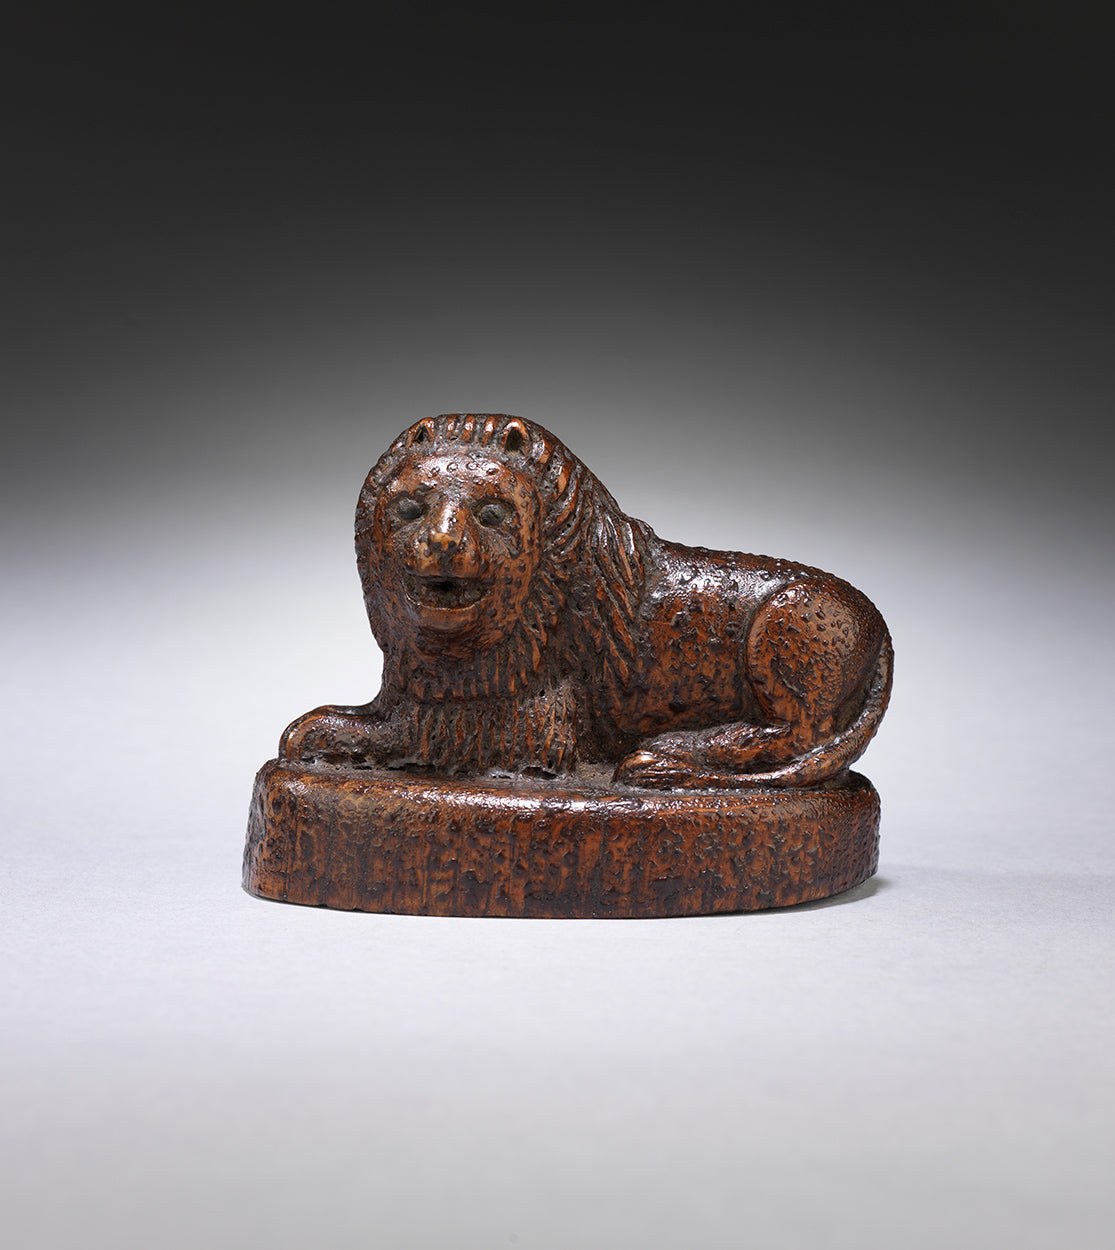 Whimsical Folk Art Sculpture of a Reclining Lion